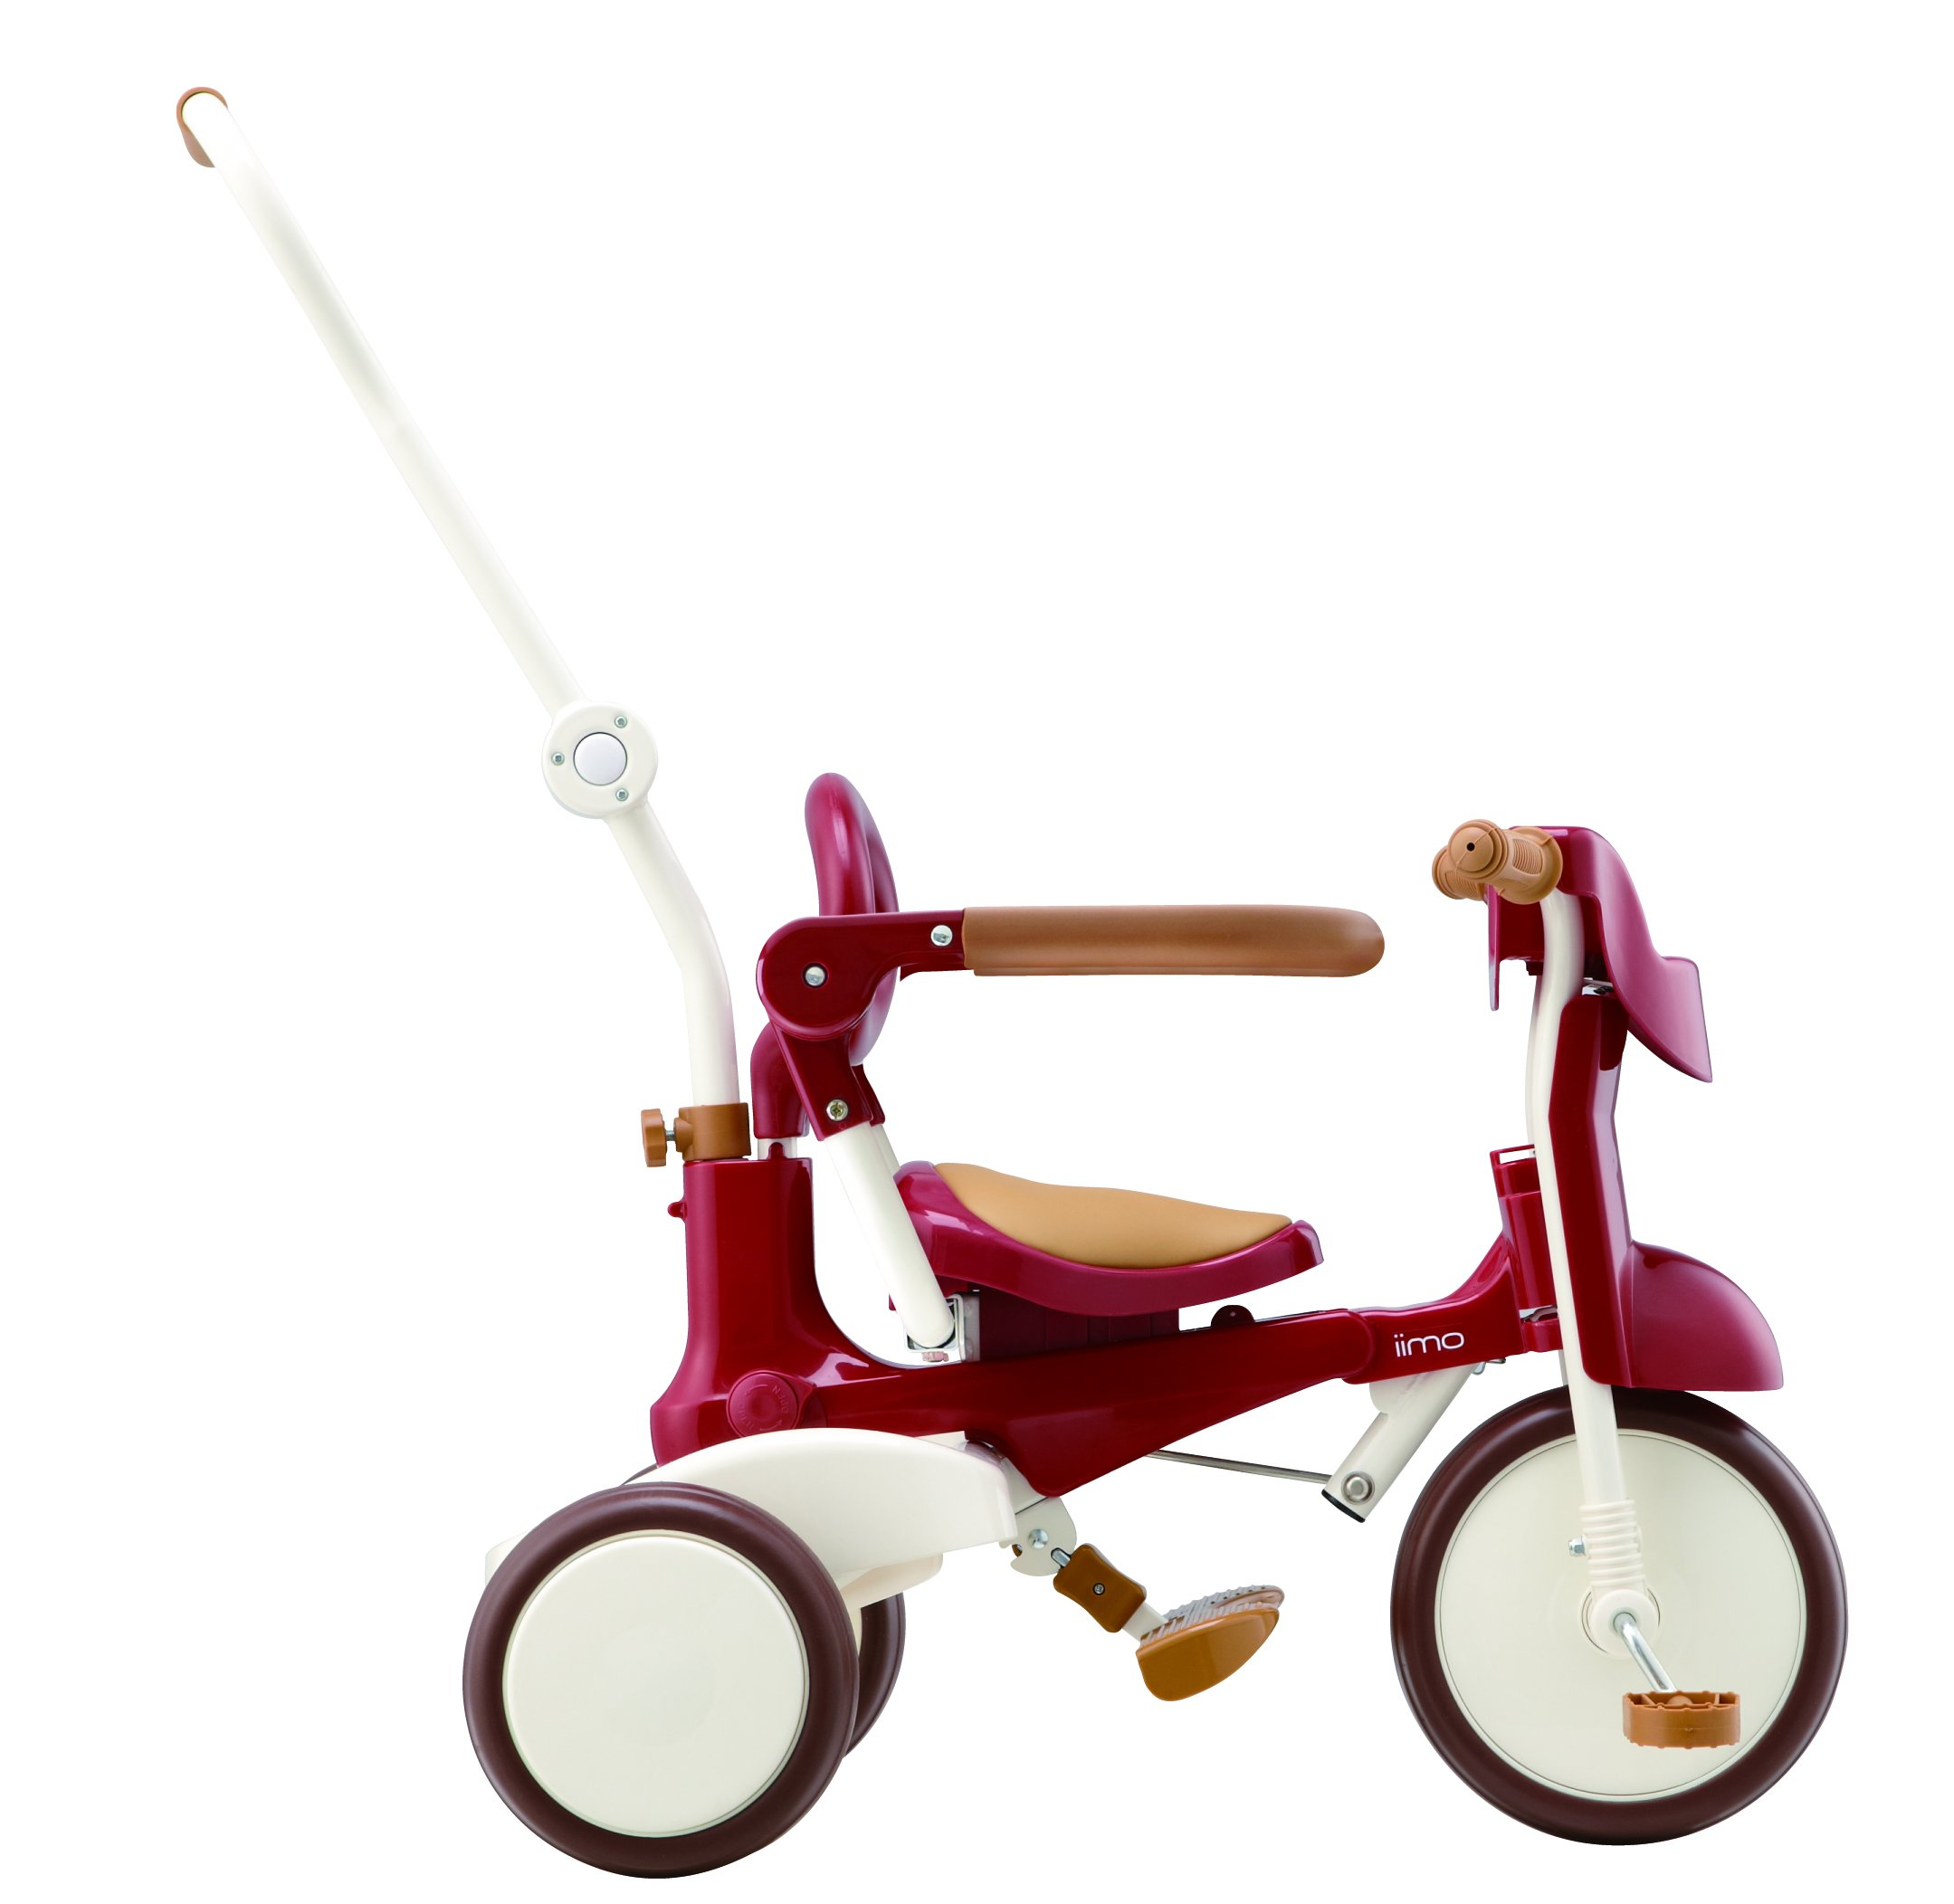 Tricycle Foldable Toddler Iimo02 ~ Eternity Red by iimo (Image #1)